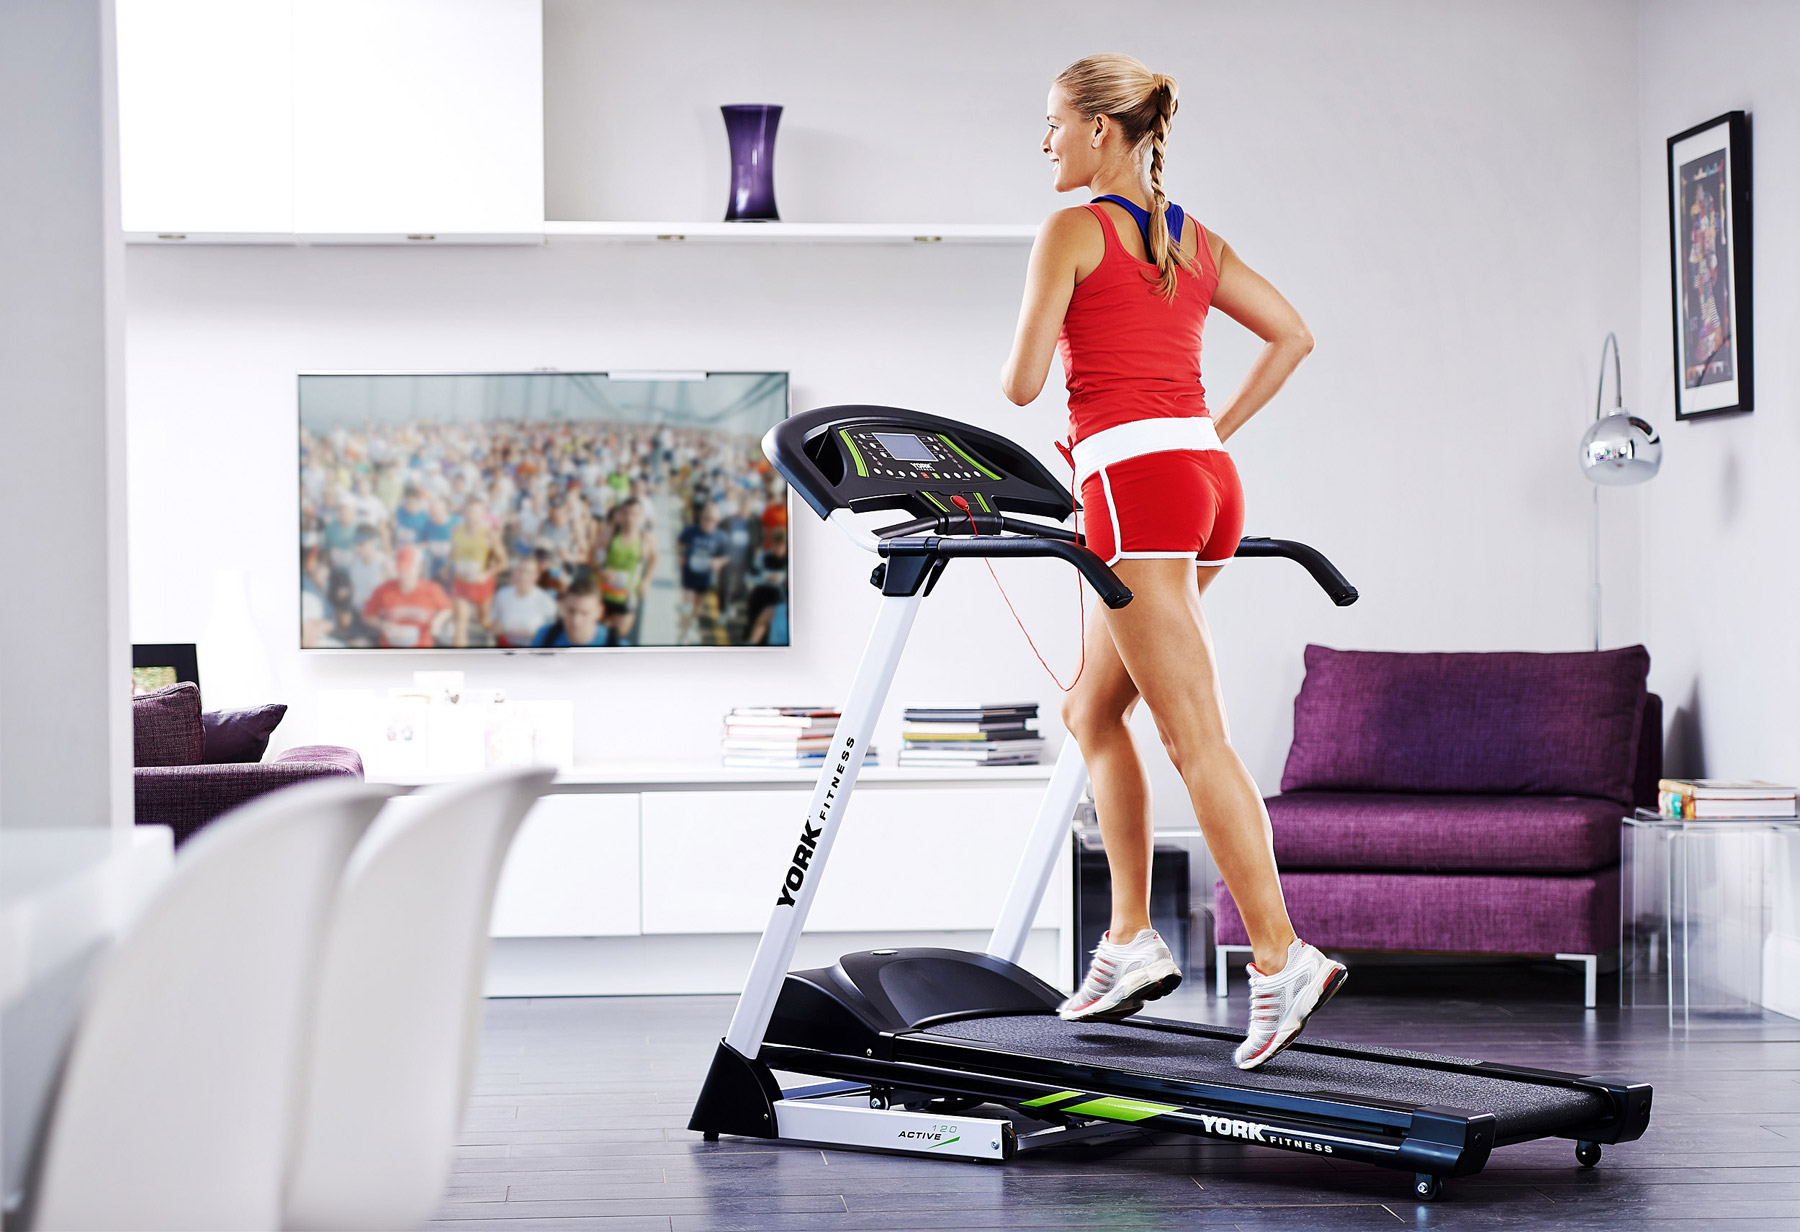 Lifestyle image showing a woman on a running machine in the home